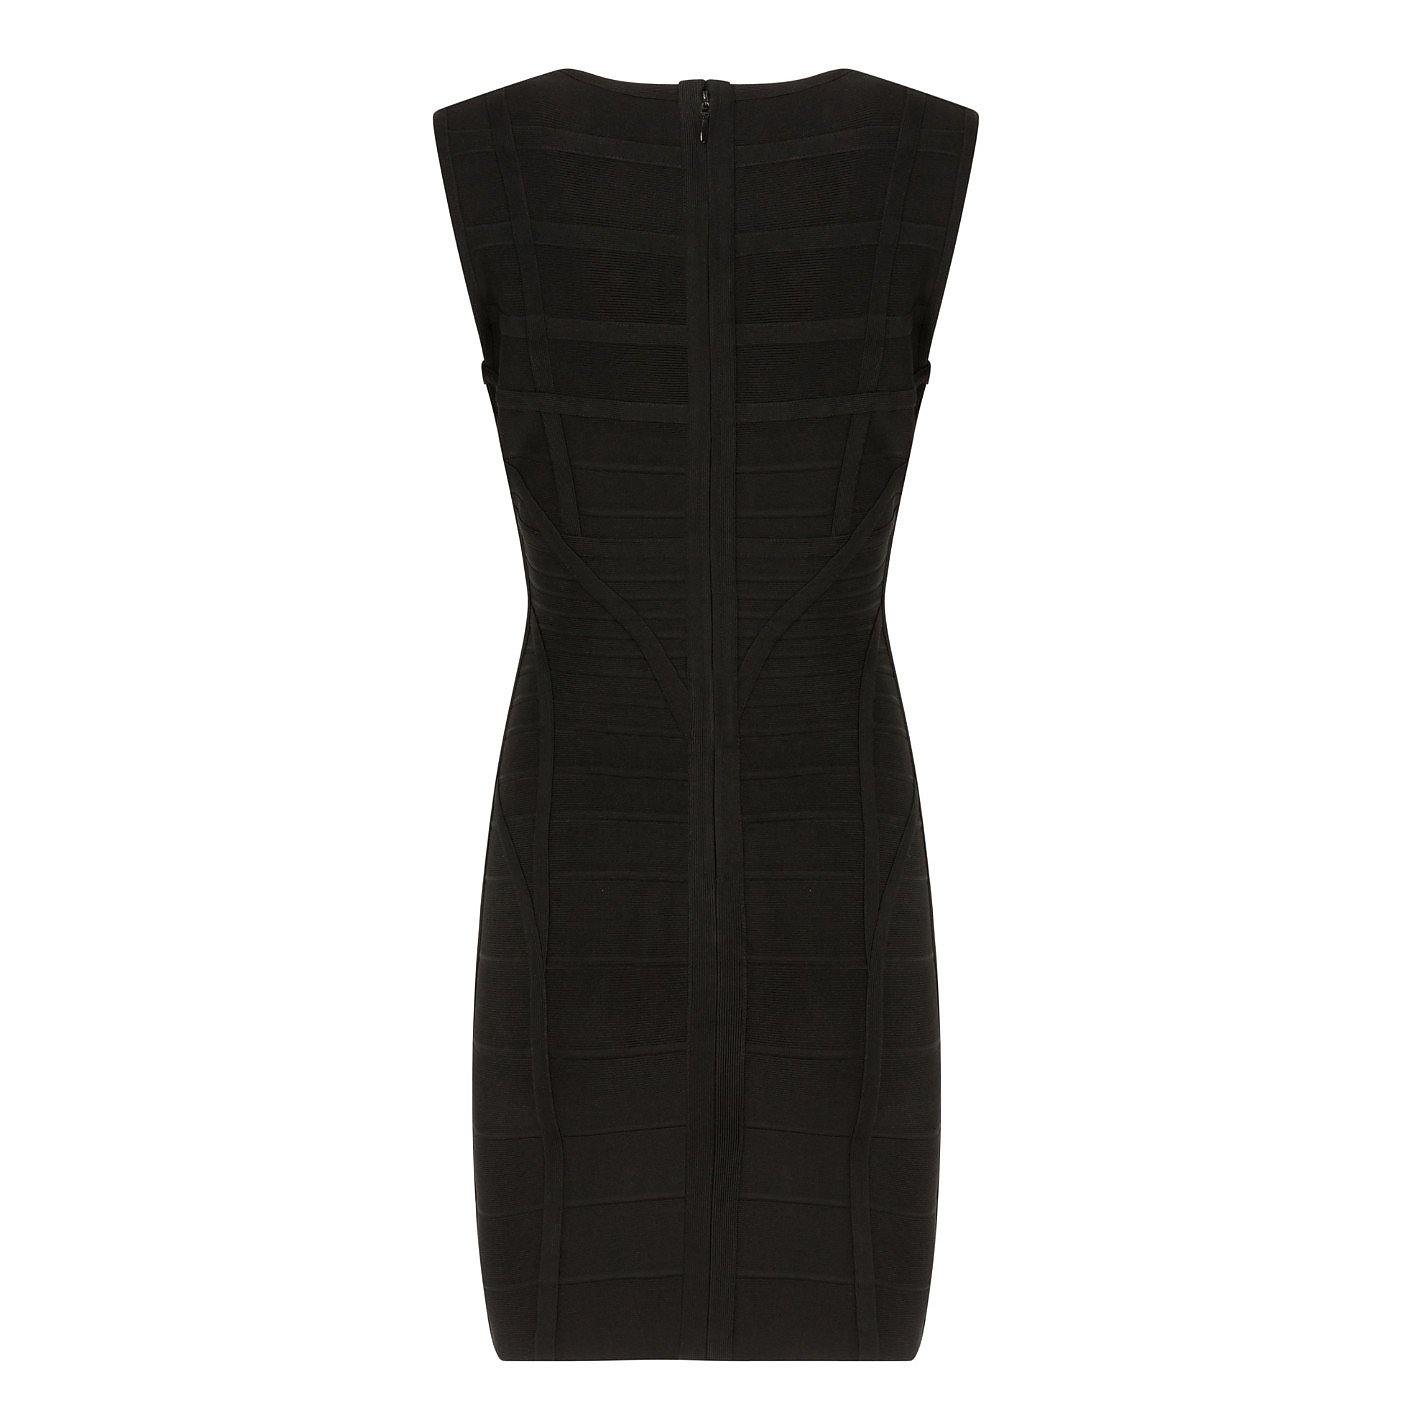 Herve Leger Kane Bandage Dress